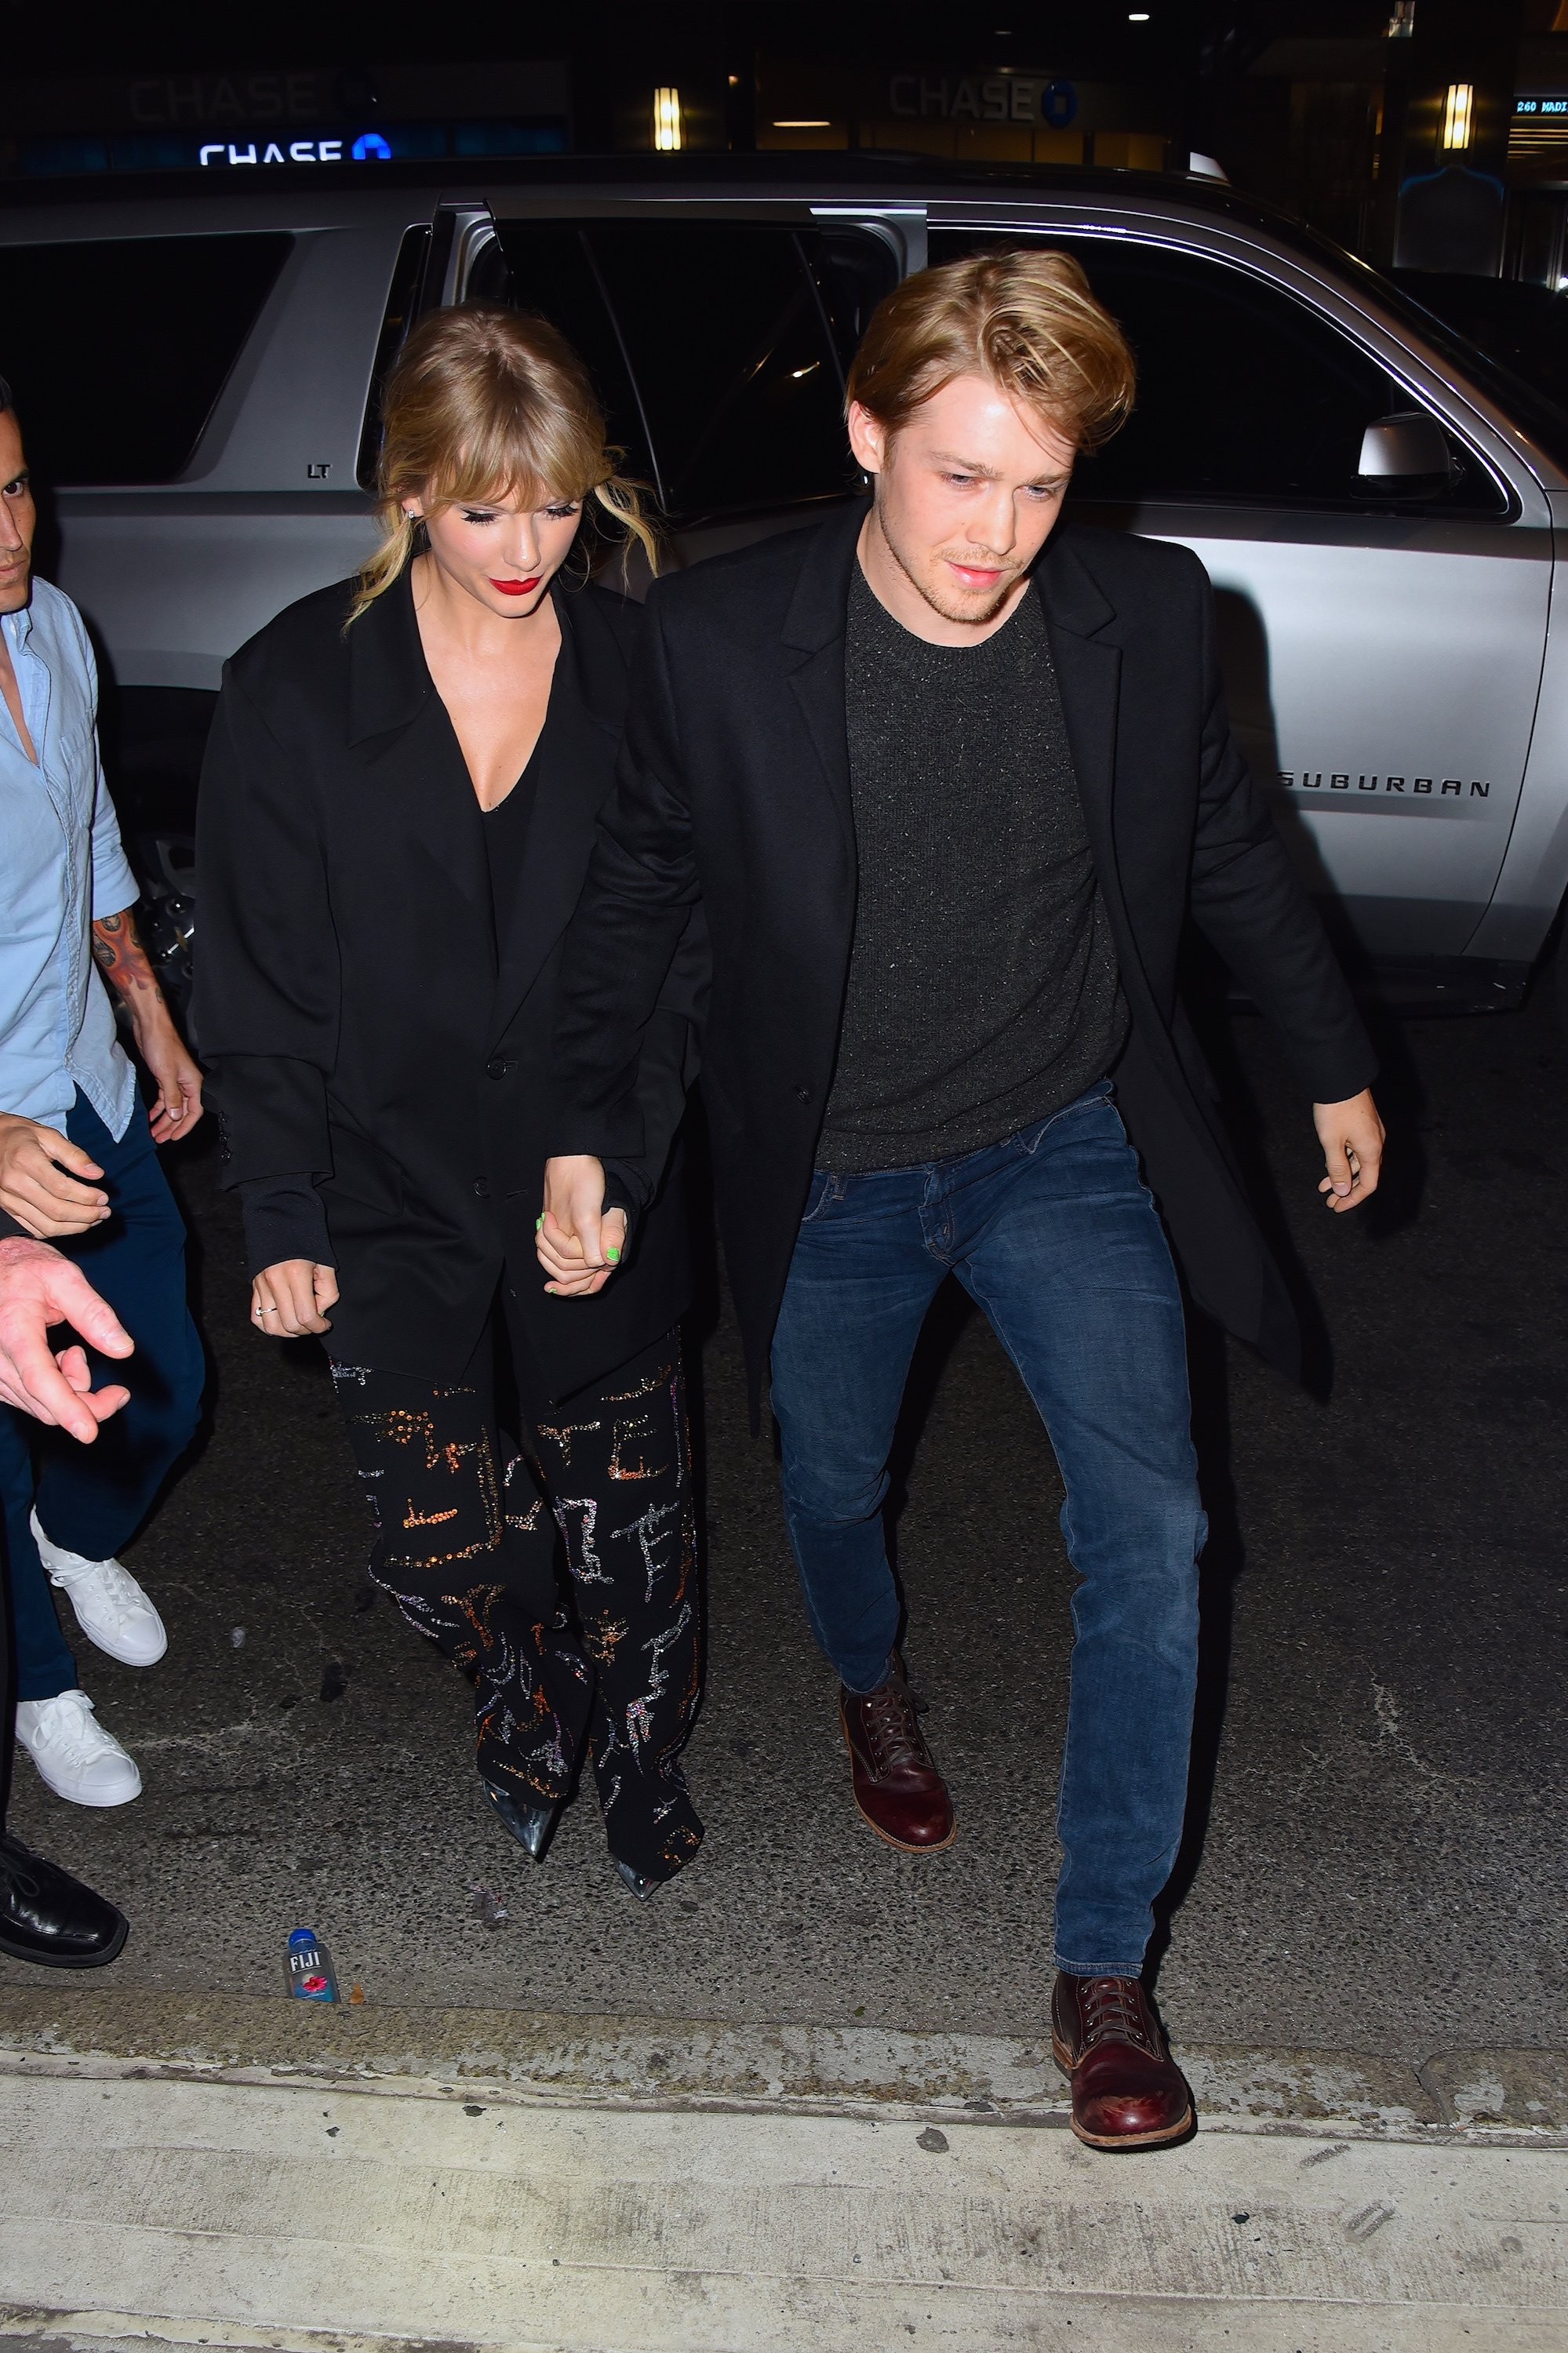 Taylor Swift und Joe Alwyn besuchen die Afterparty von Saturday Night Live im Restaurant Zuma am 6. Oktober 2019 in New York City. | Quelle: Getty Images